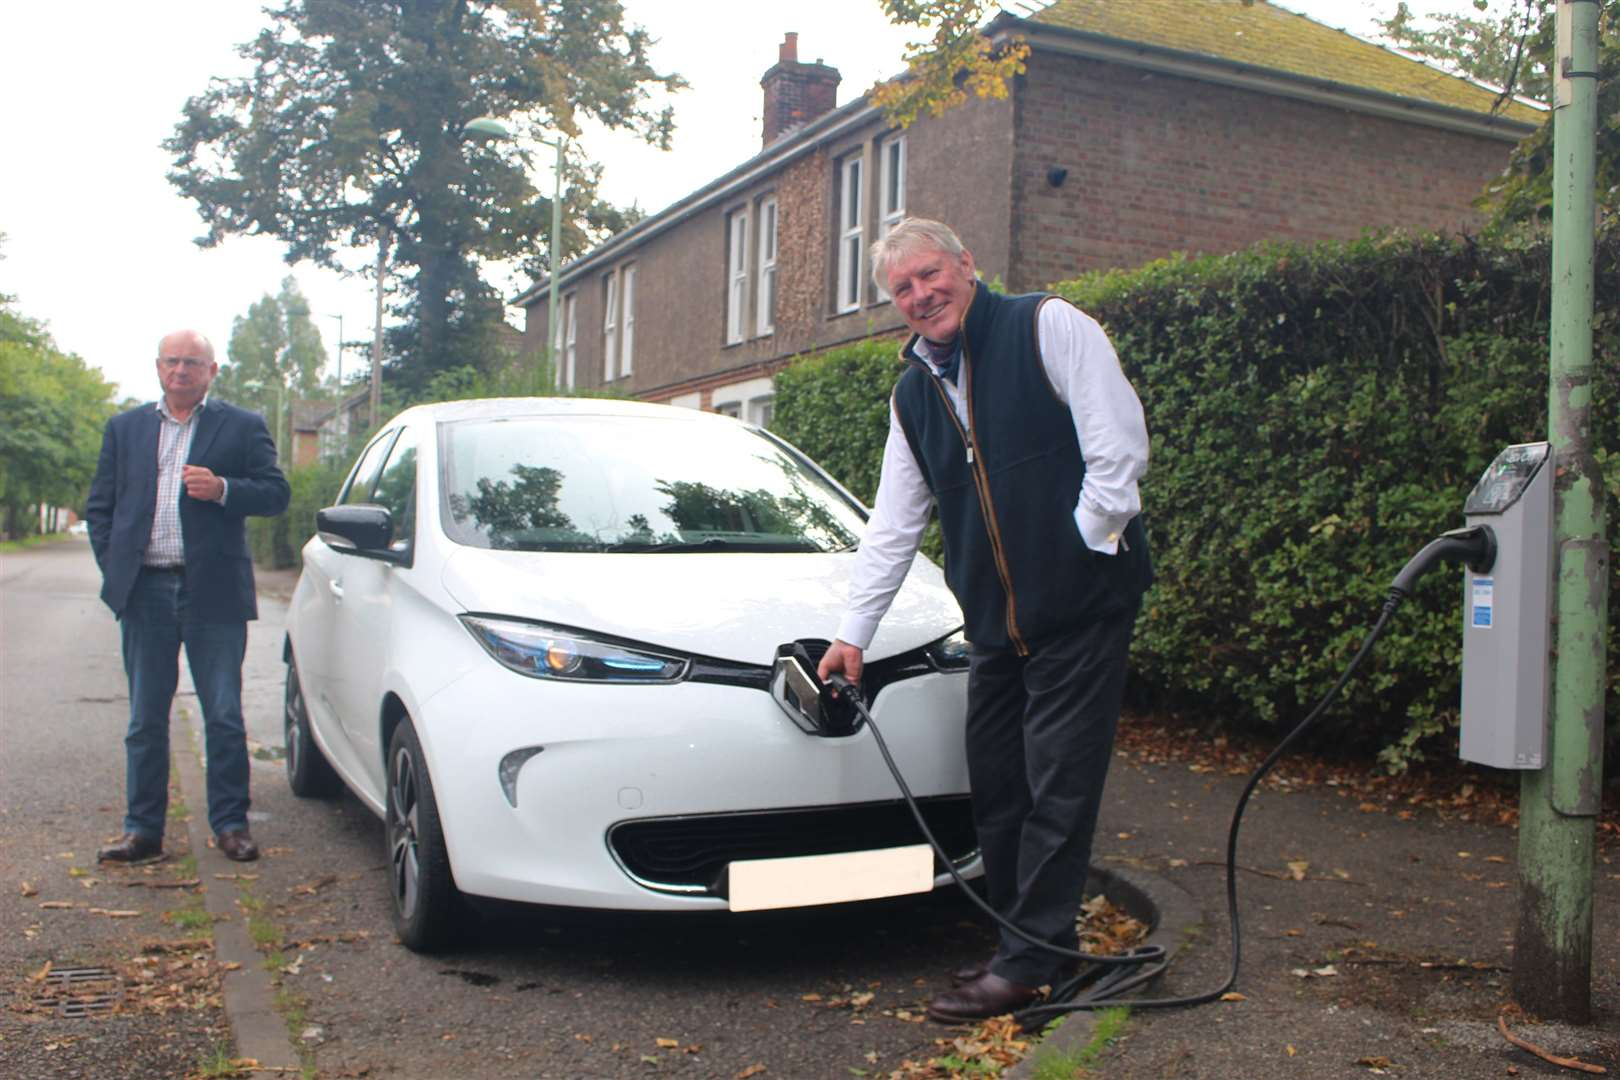 The council has piloted a scheme whereby street lights are being used to charge electric vehicles.